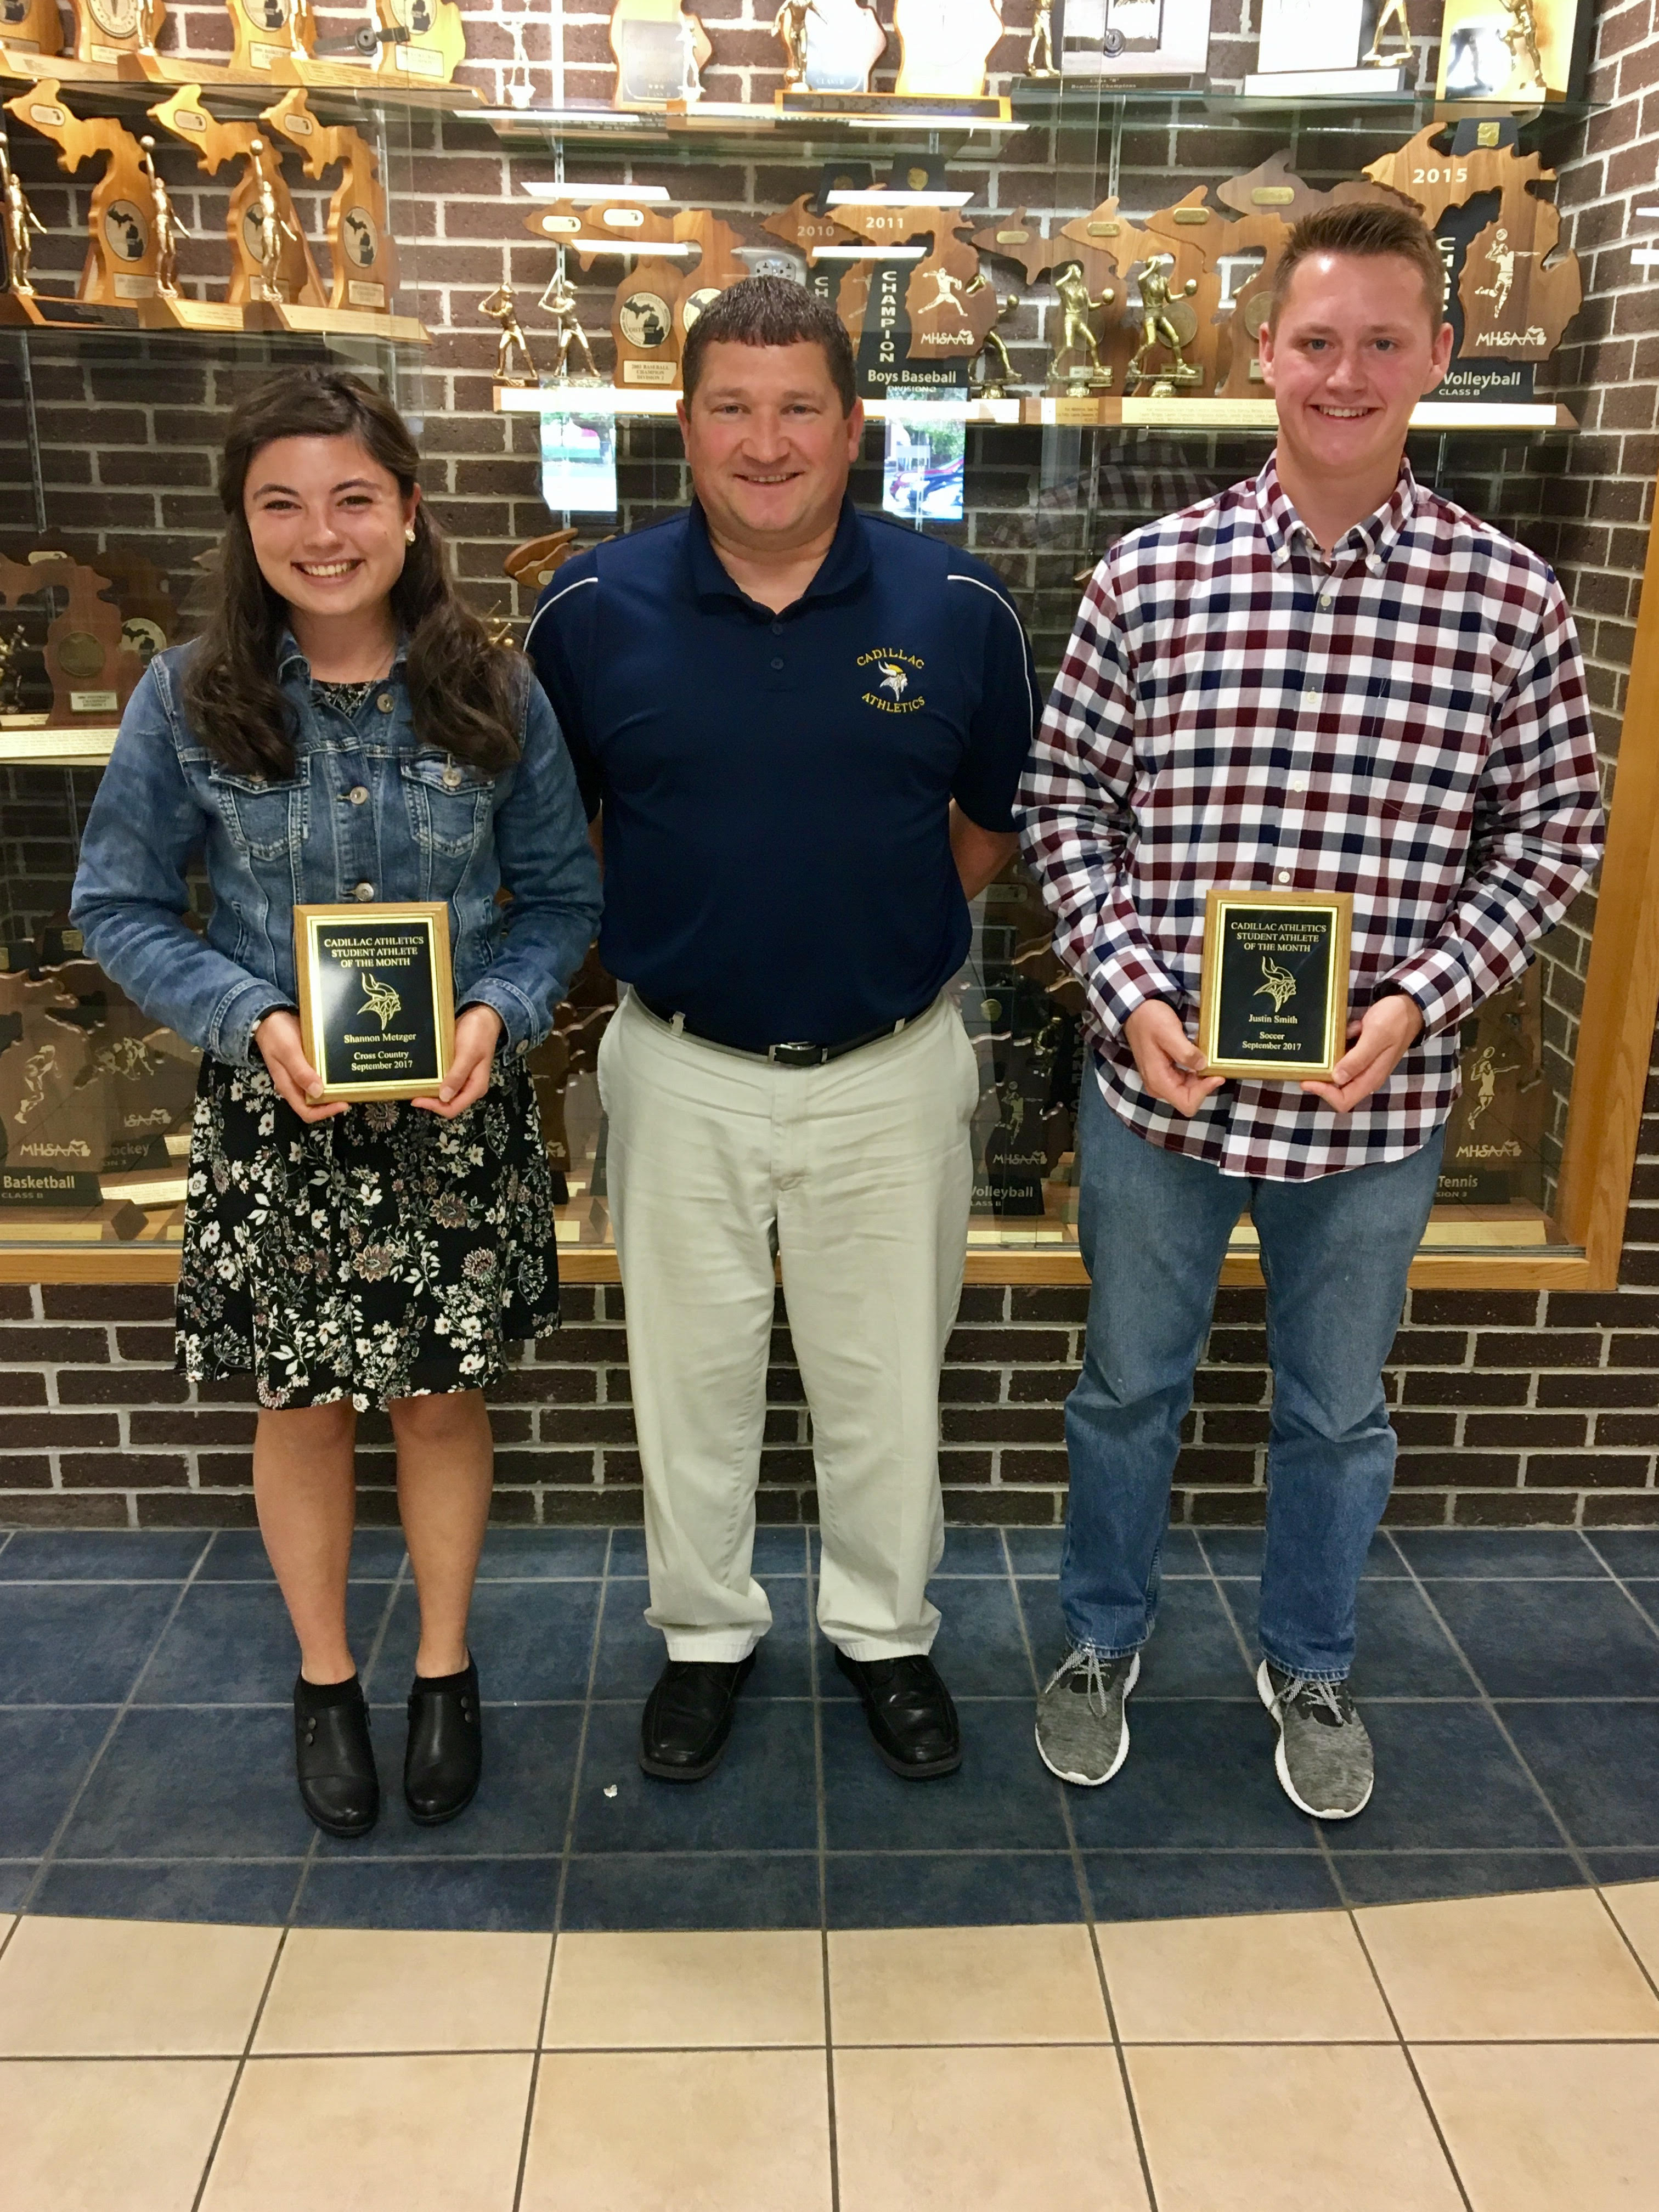 Shannon Metzger and Justin Smith Selected as September Athletes of the Month